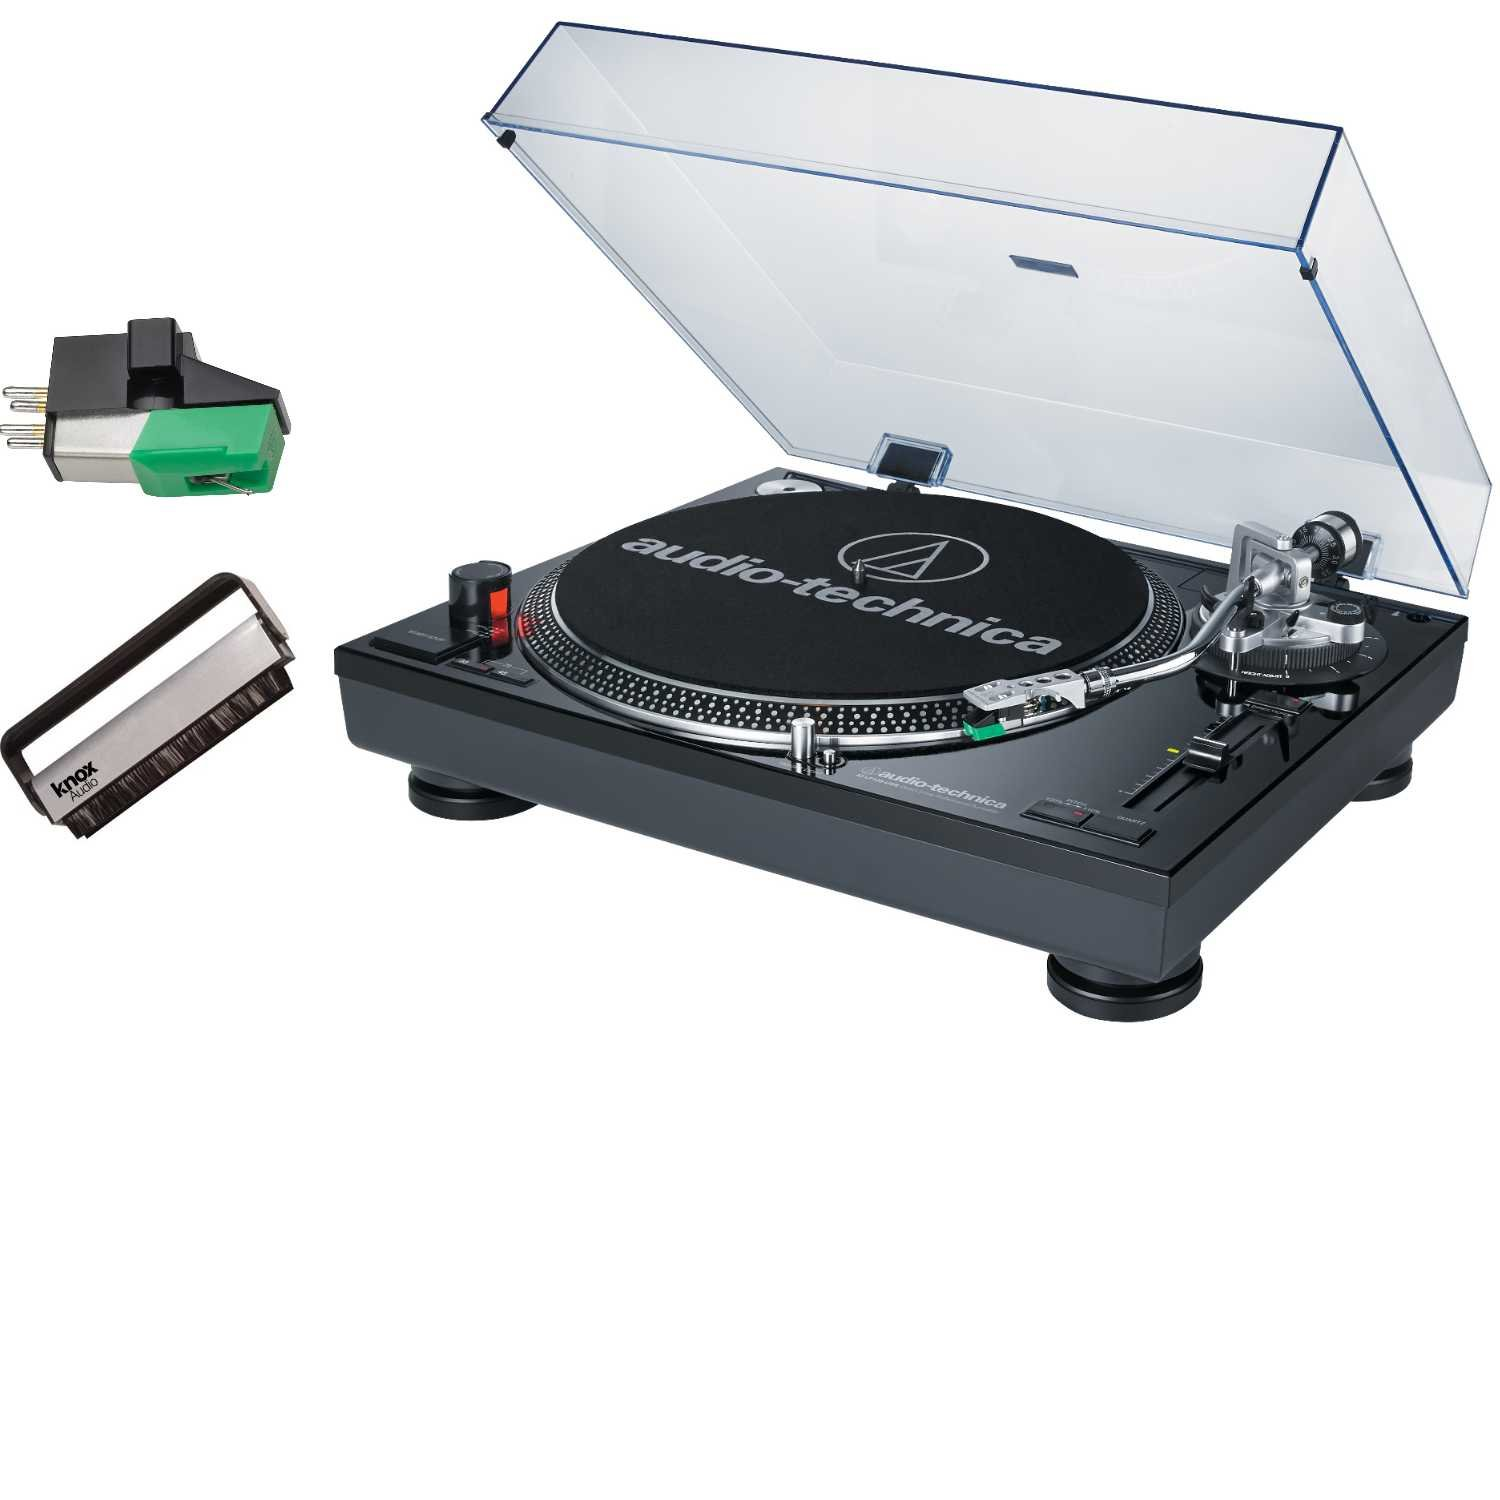 Audio-Technica AT-LP120-USB Professional Turntable (Black) with Extra AT95E Cartridge and Knox Vinyl Brush